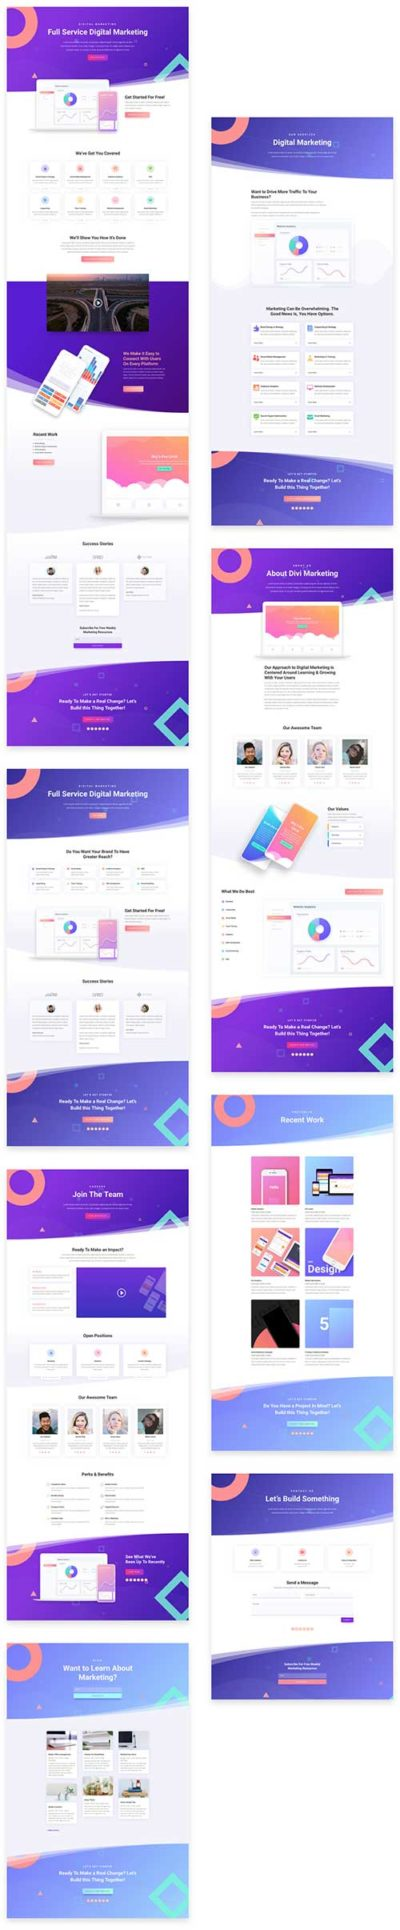 free digital marketing layout pack for divi theme